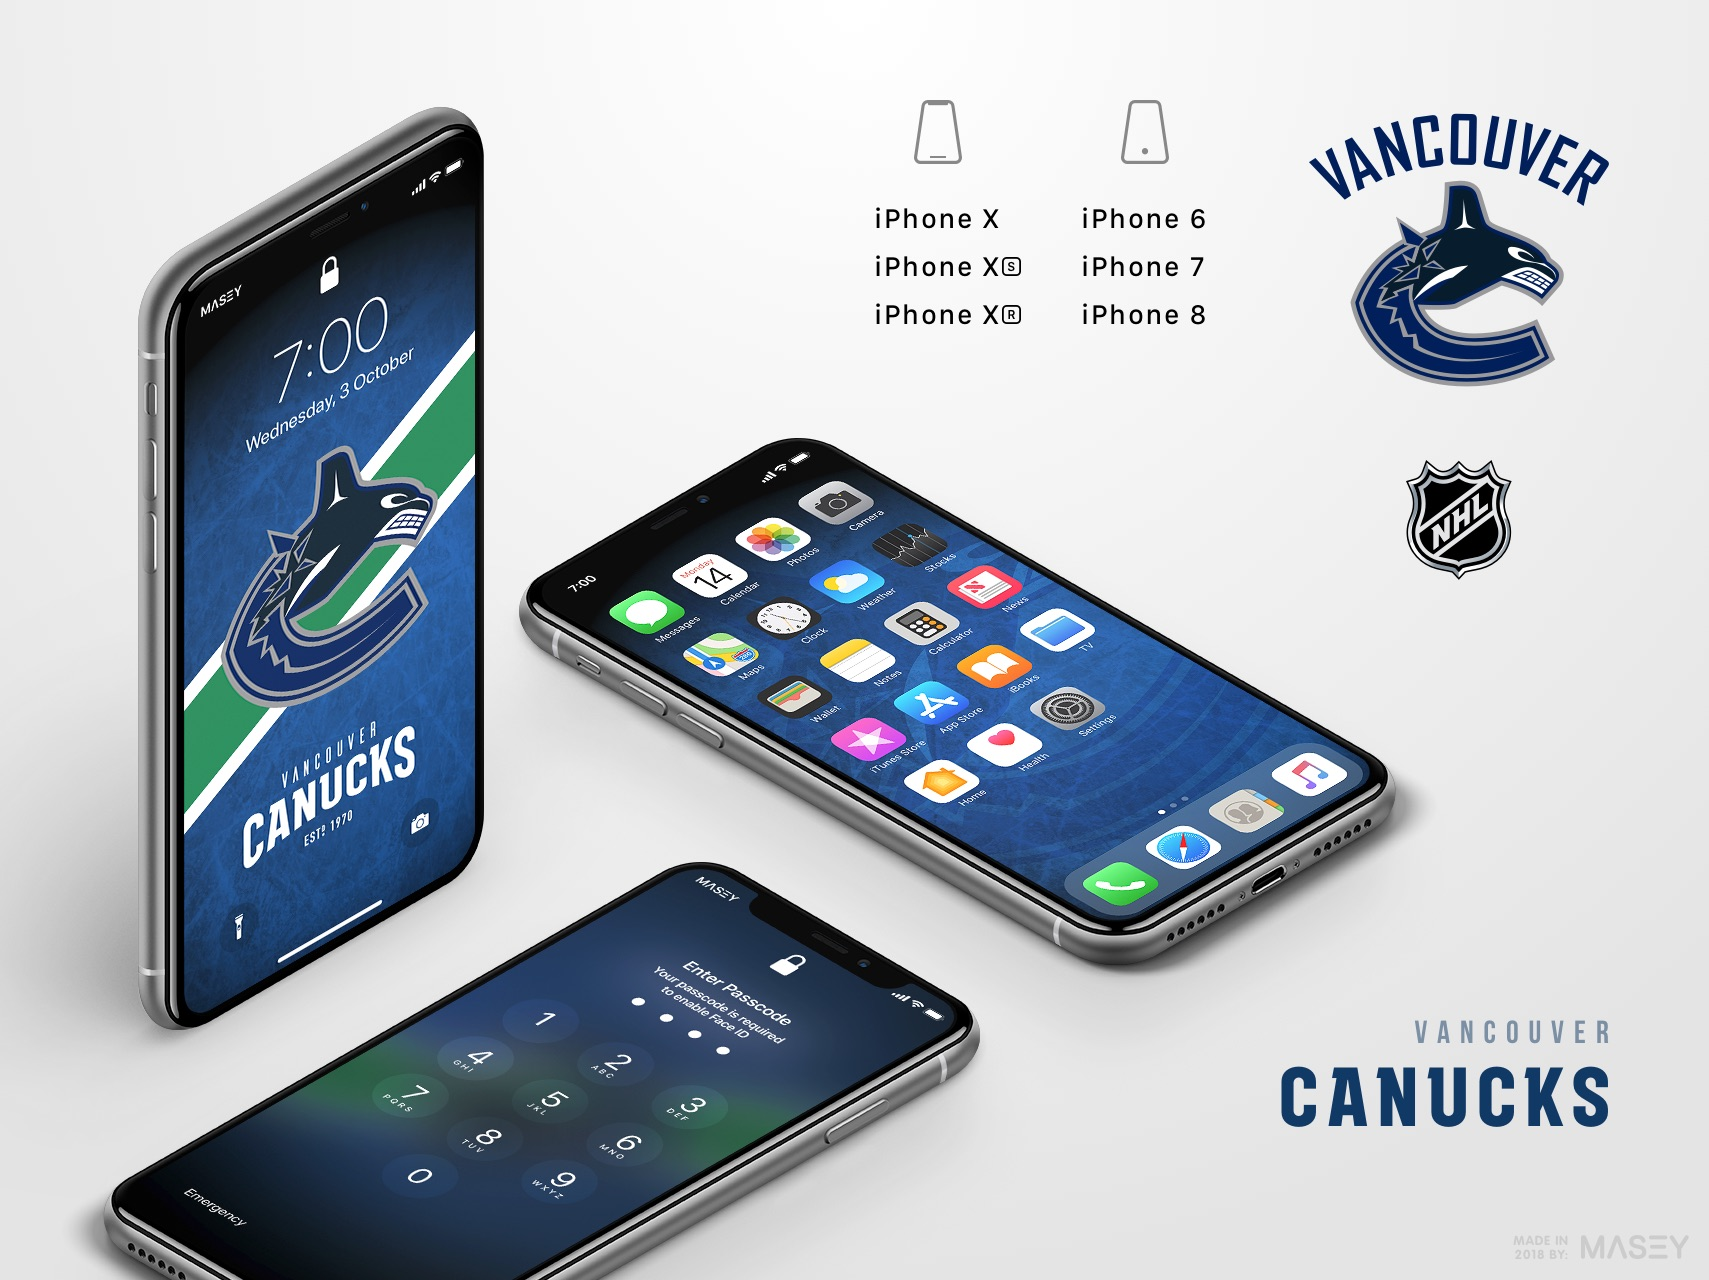 Vancouver Canucks iPhone Wallpaper